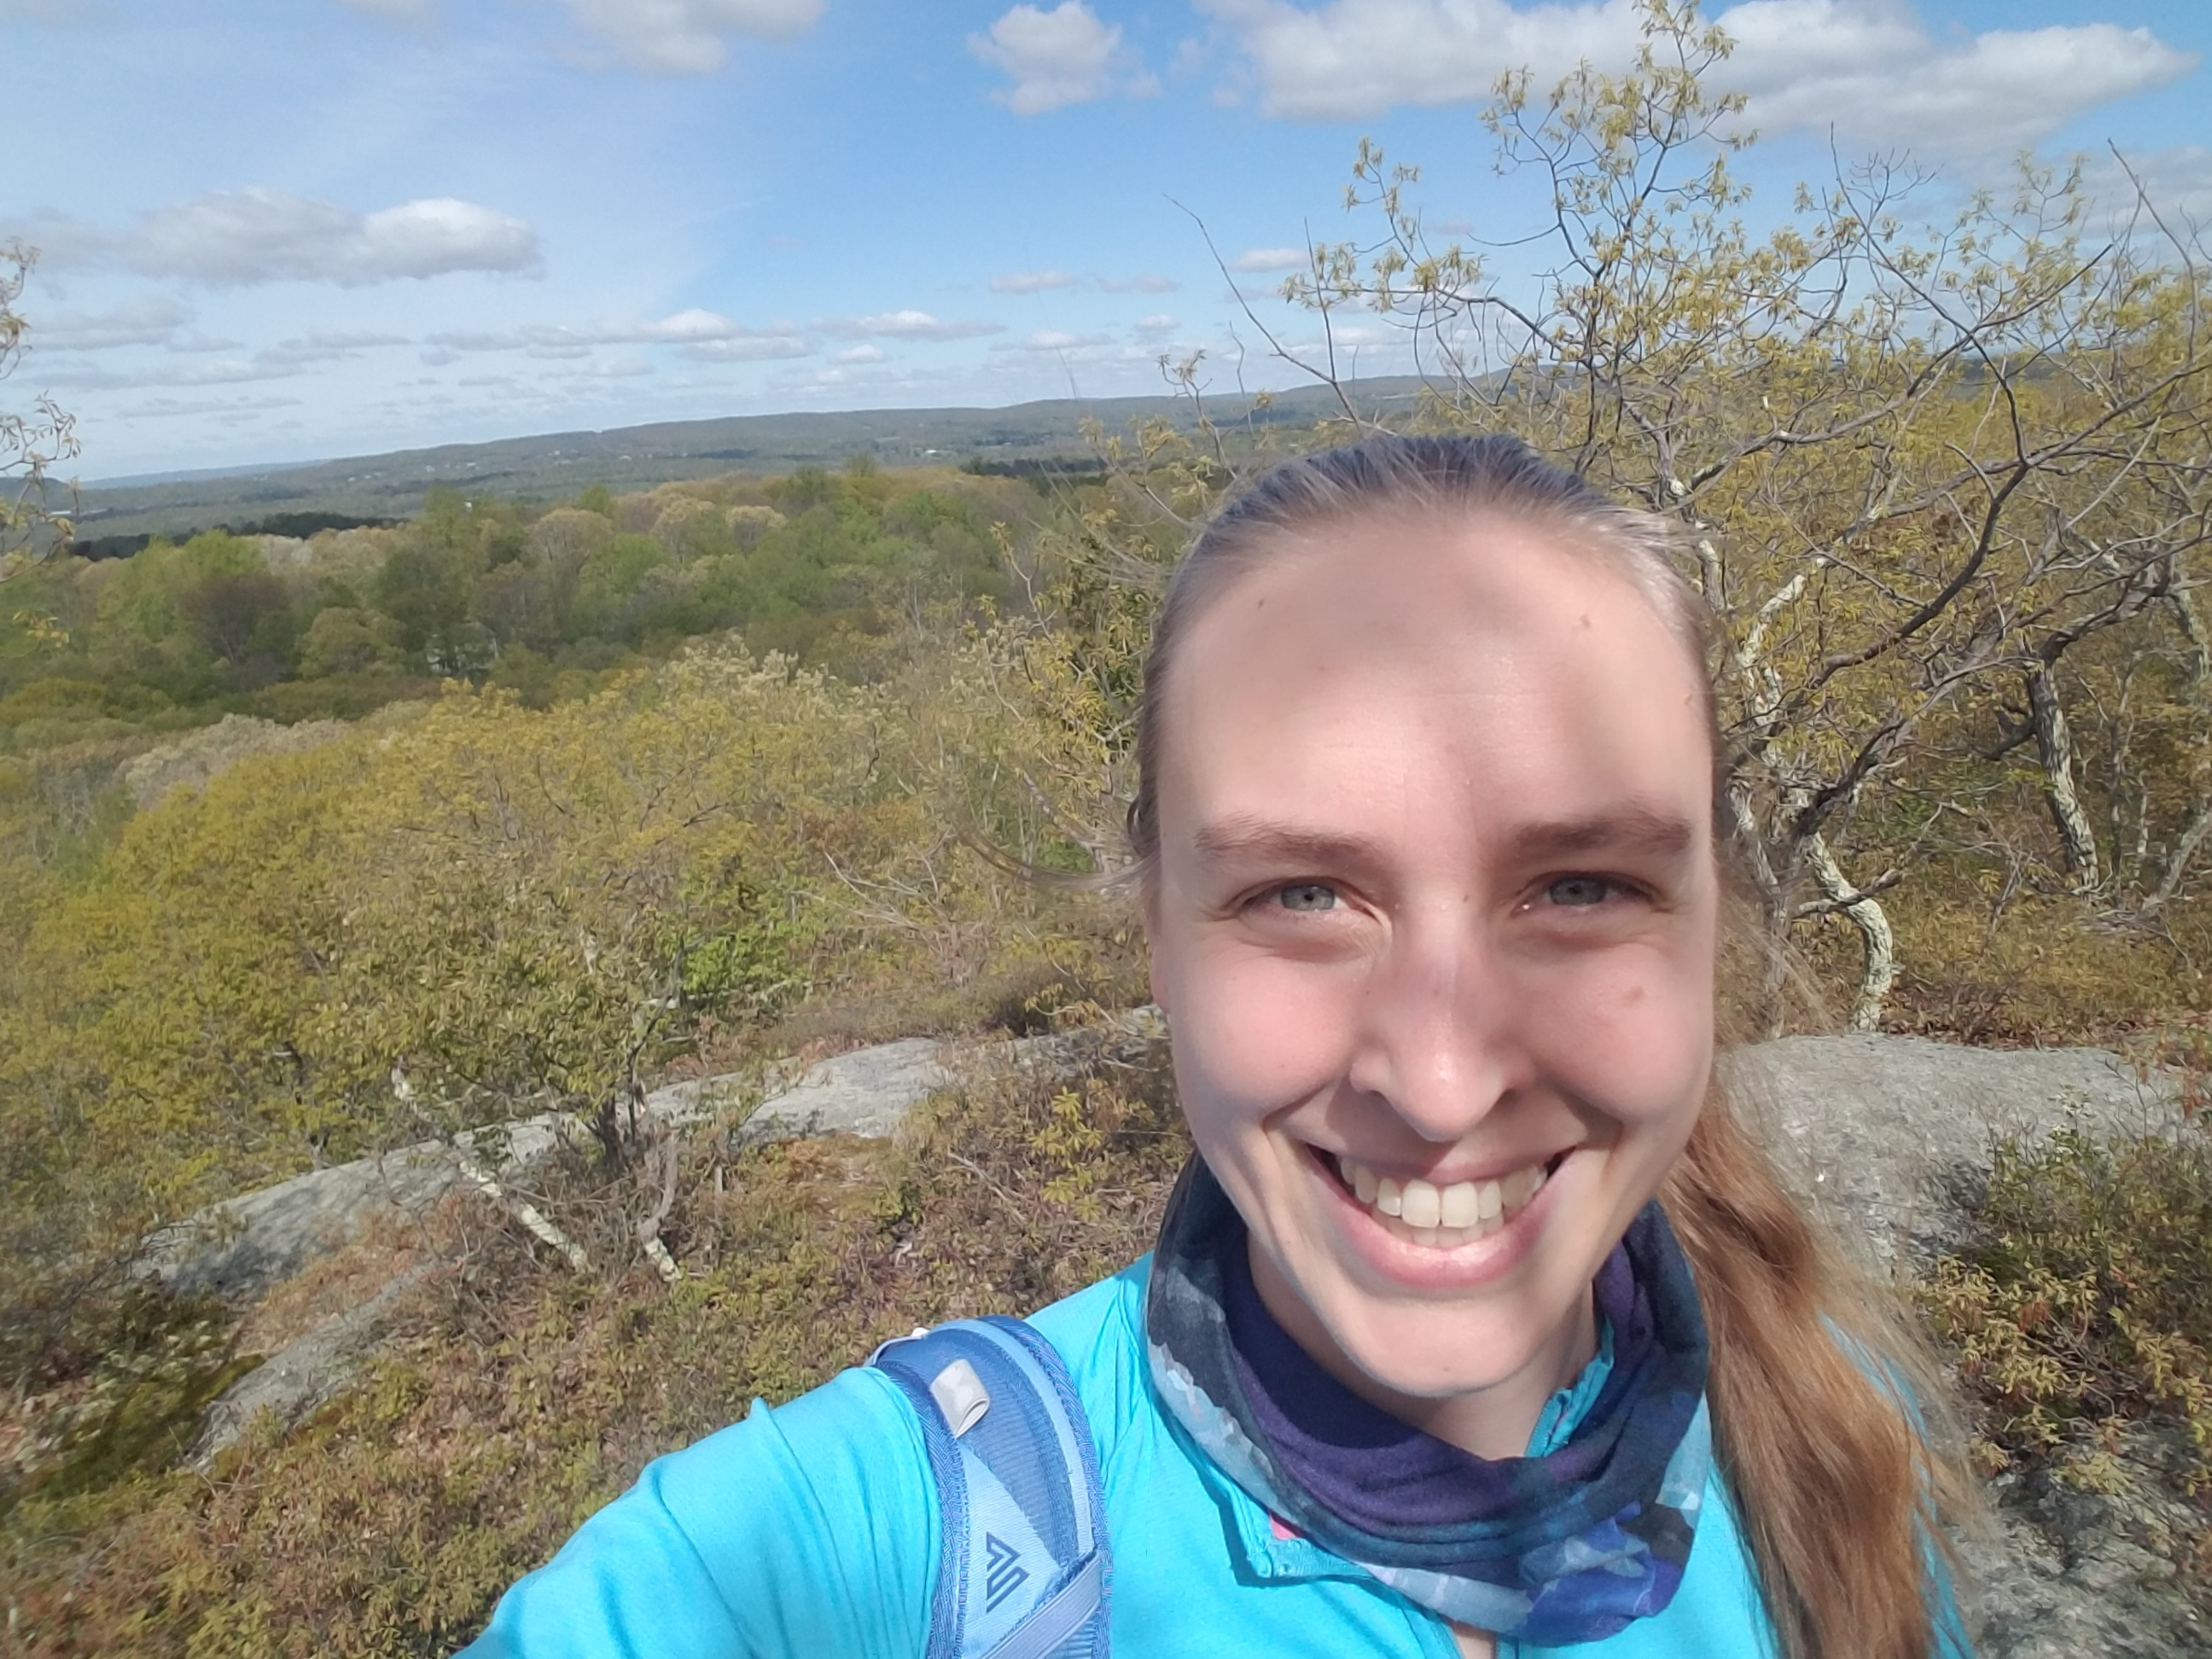 Elizabeth Peters standing on a rocky ledge overlooking a deciduous forest in early spring